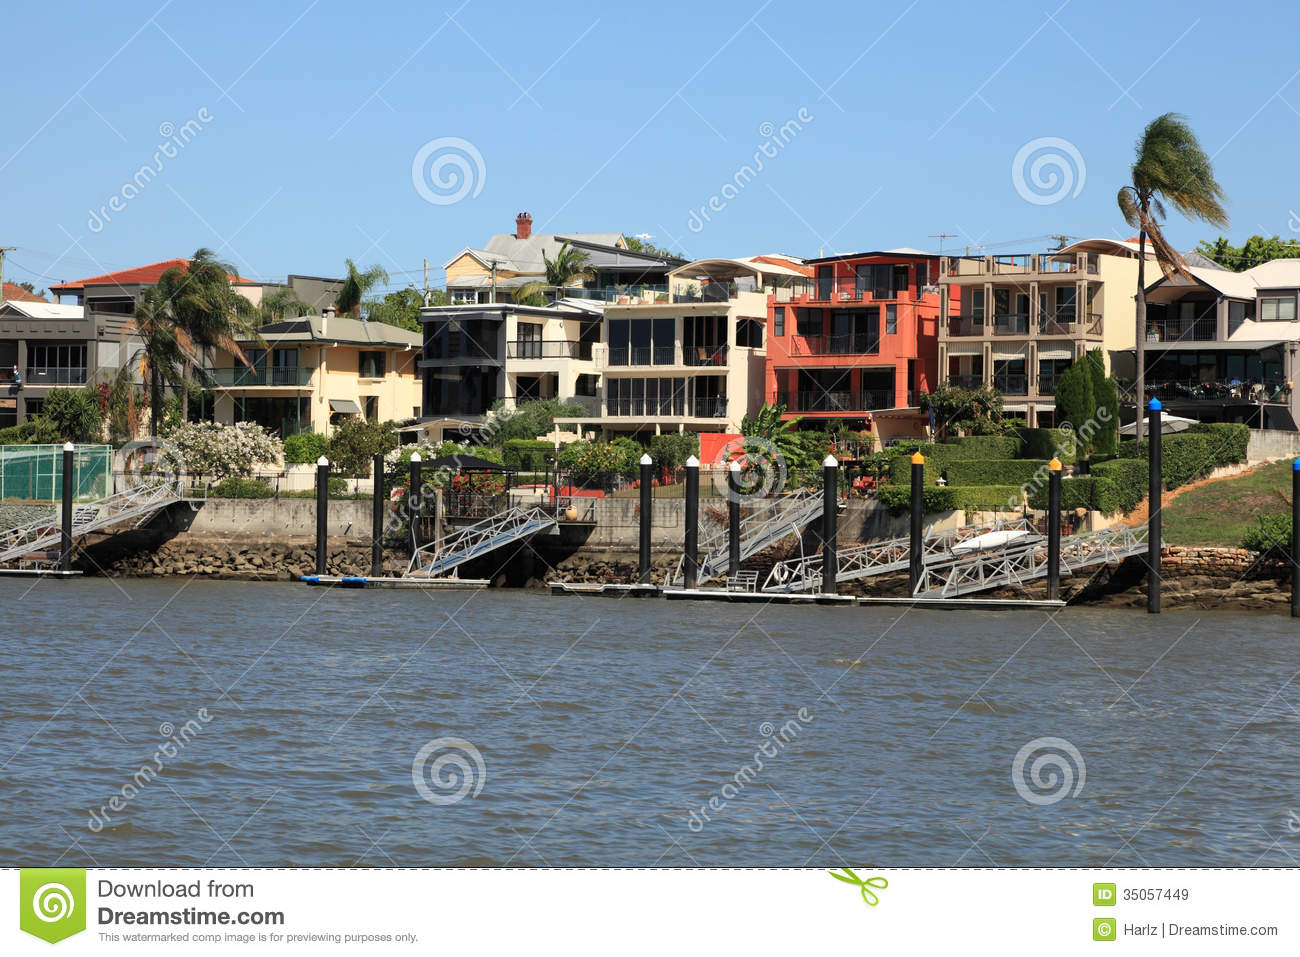 Royalty free stock photo download waterfront houses at brisbane